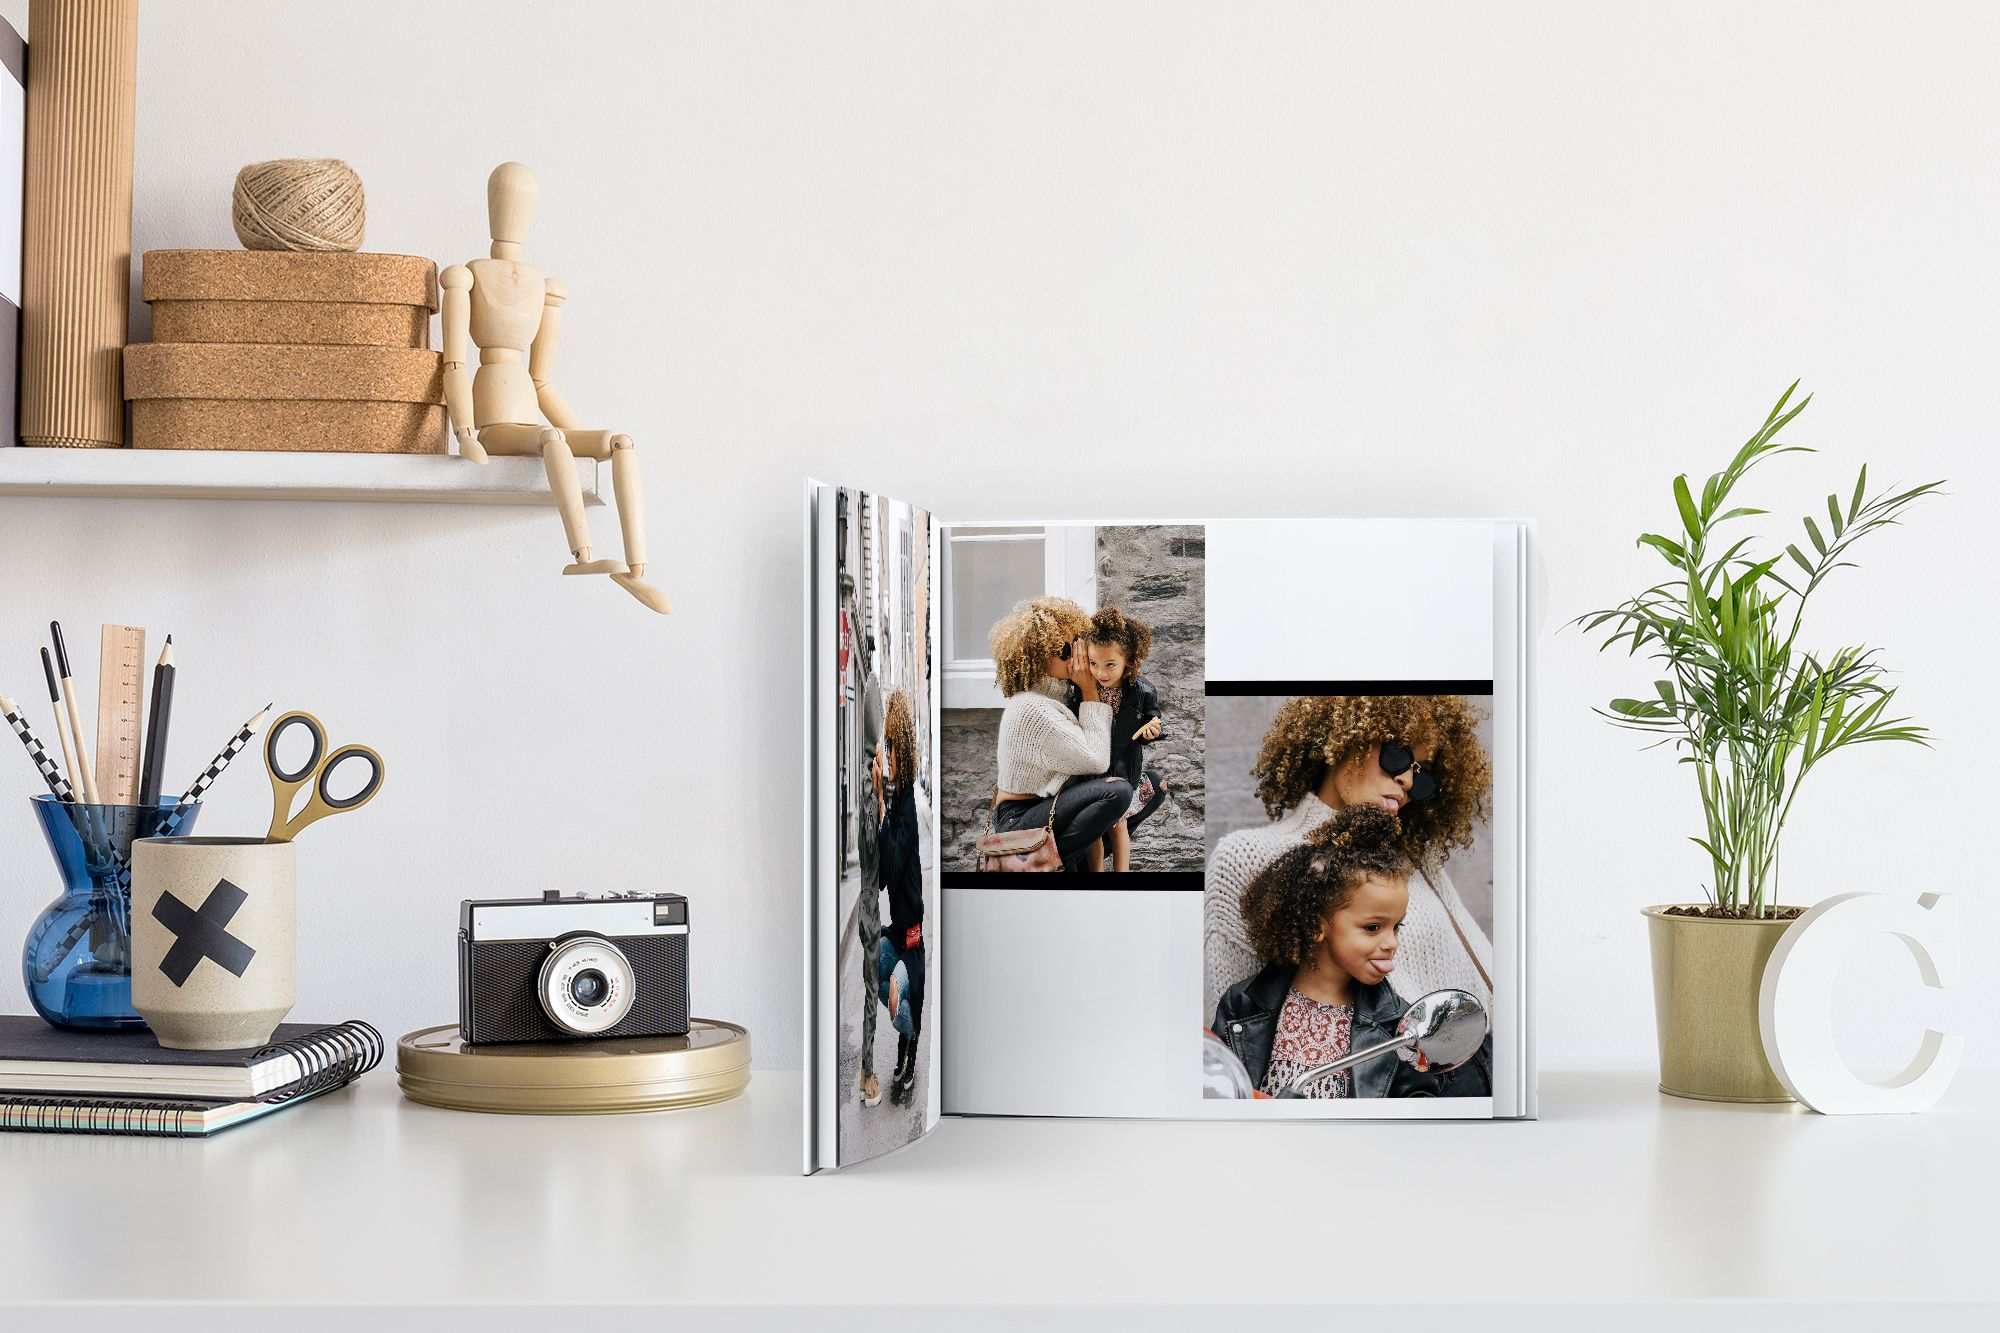 Use your own memories as a creative way to display photos